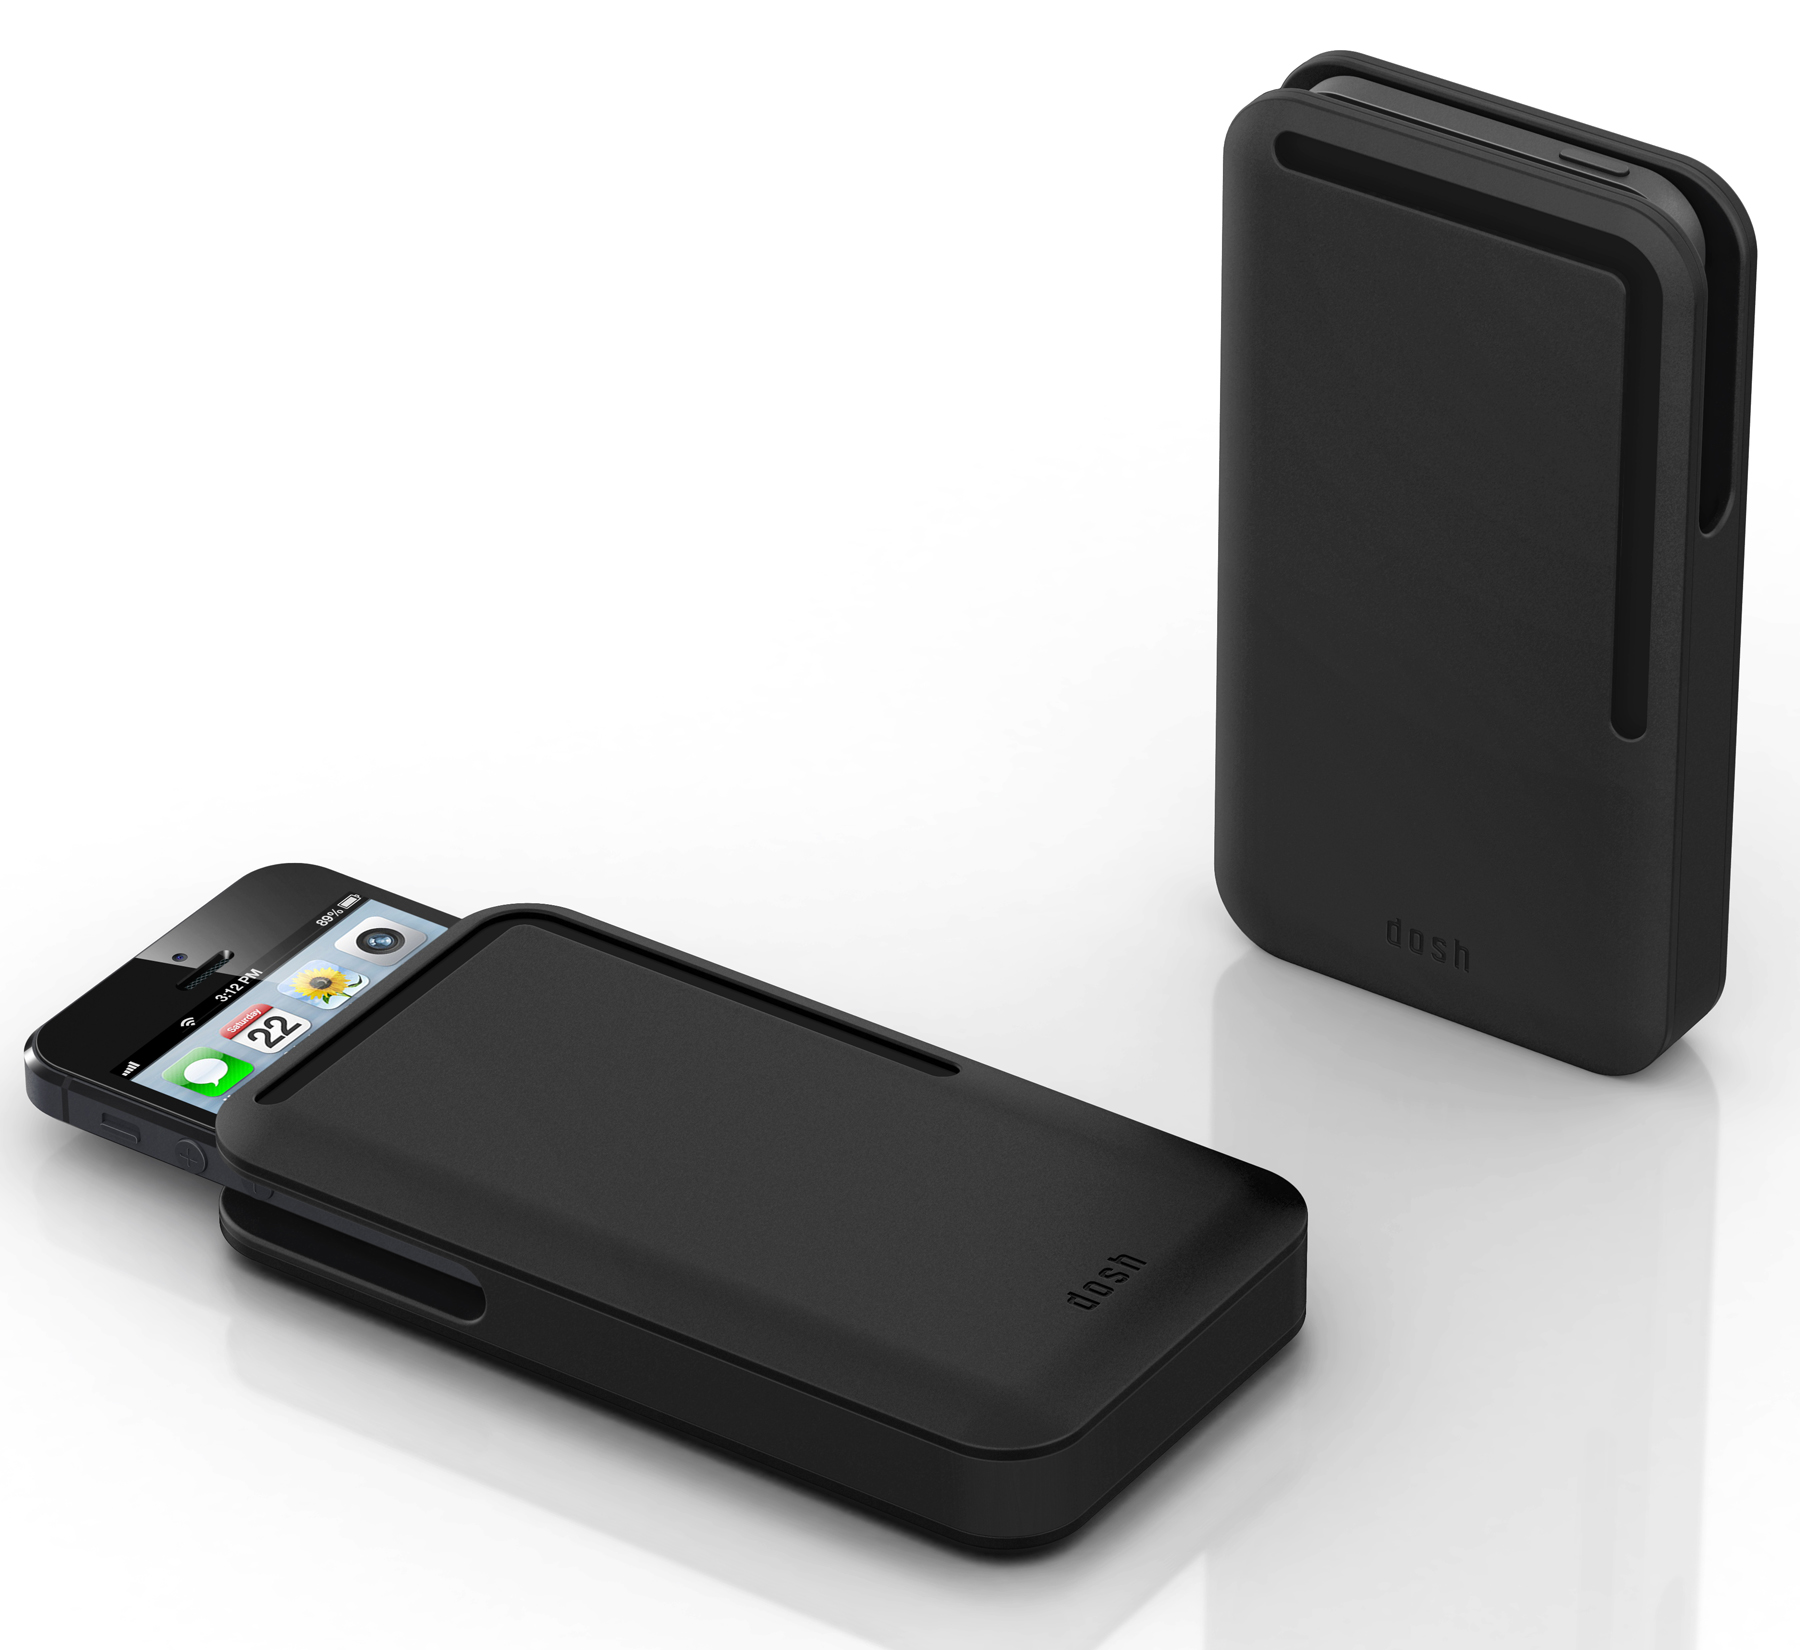 Dosh Syncro Jet Wallet - iPhone 5